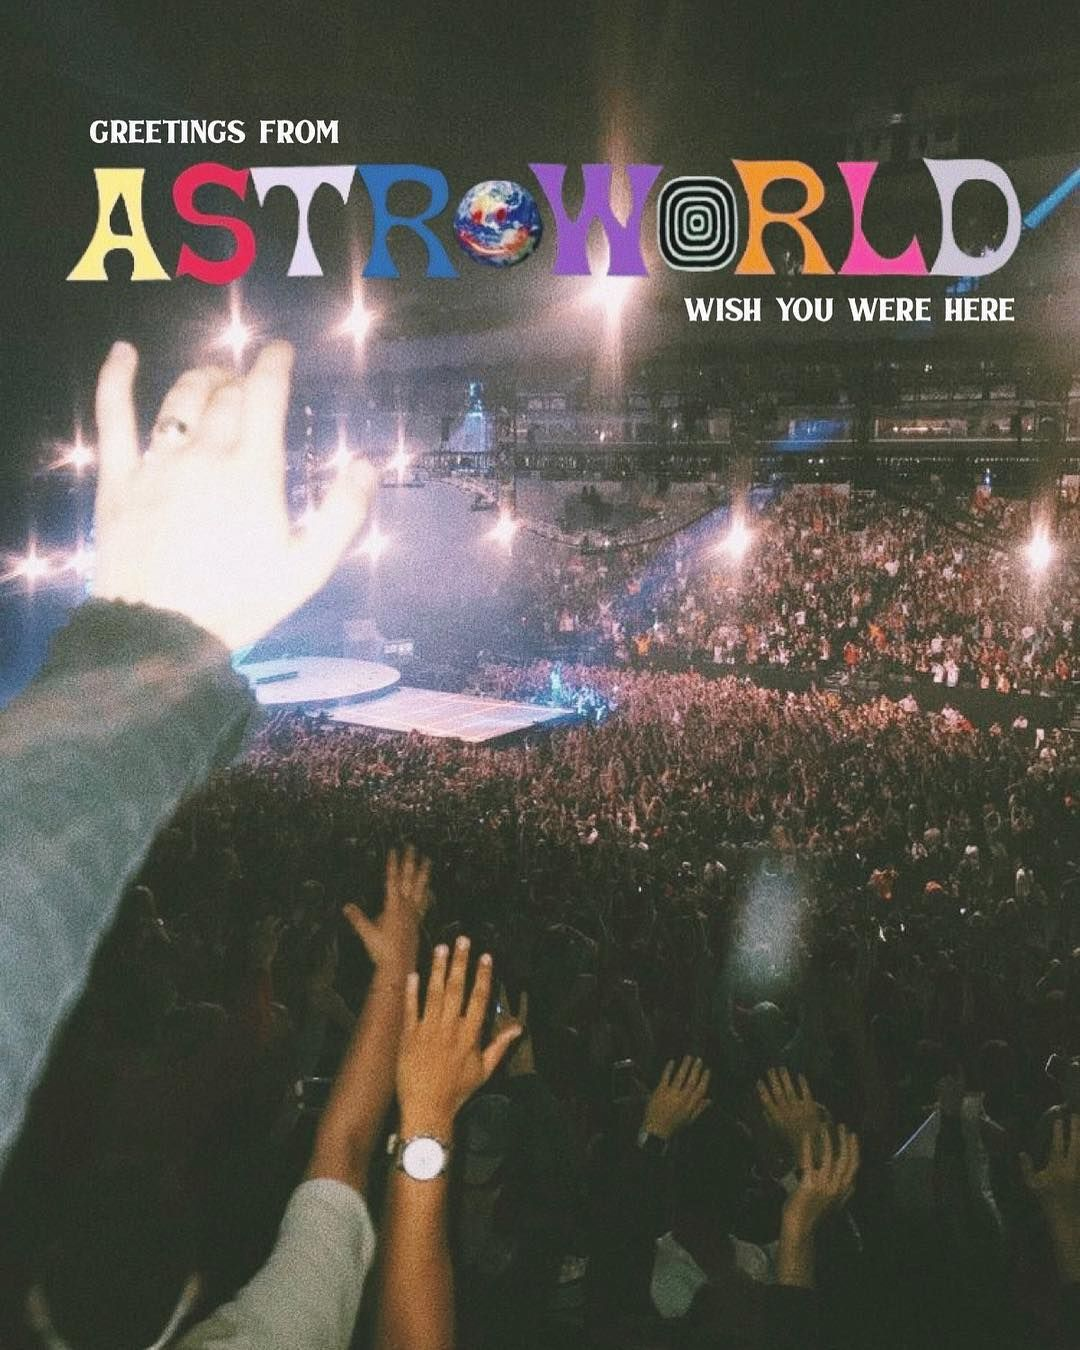 Astroworld Wish You Were Here Travis Scott Travis Scott Wallpapers Photo Wall Collage Picture Collage Wall